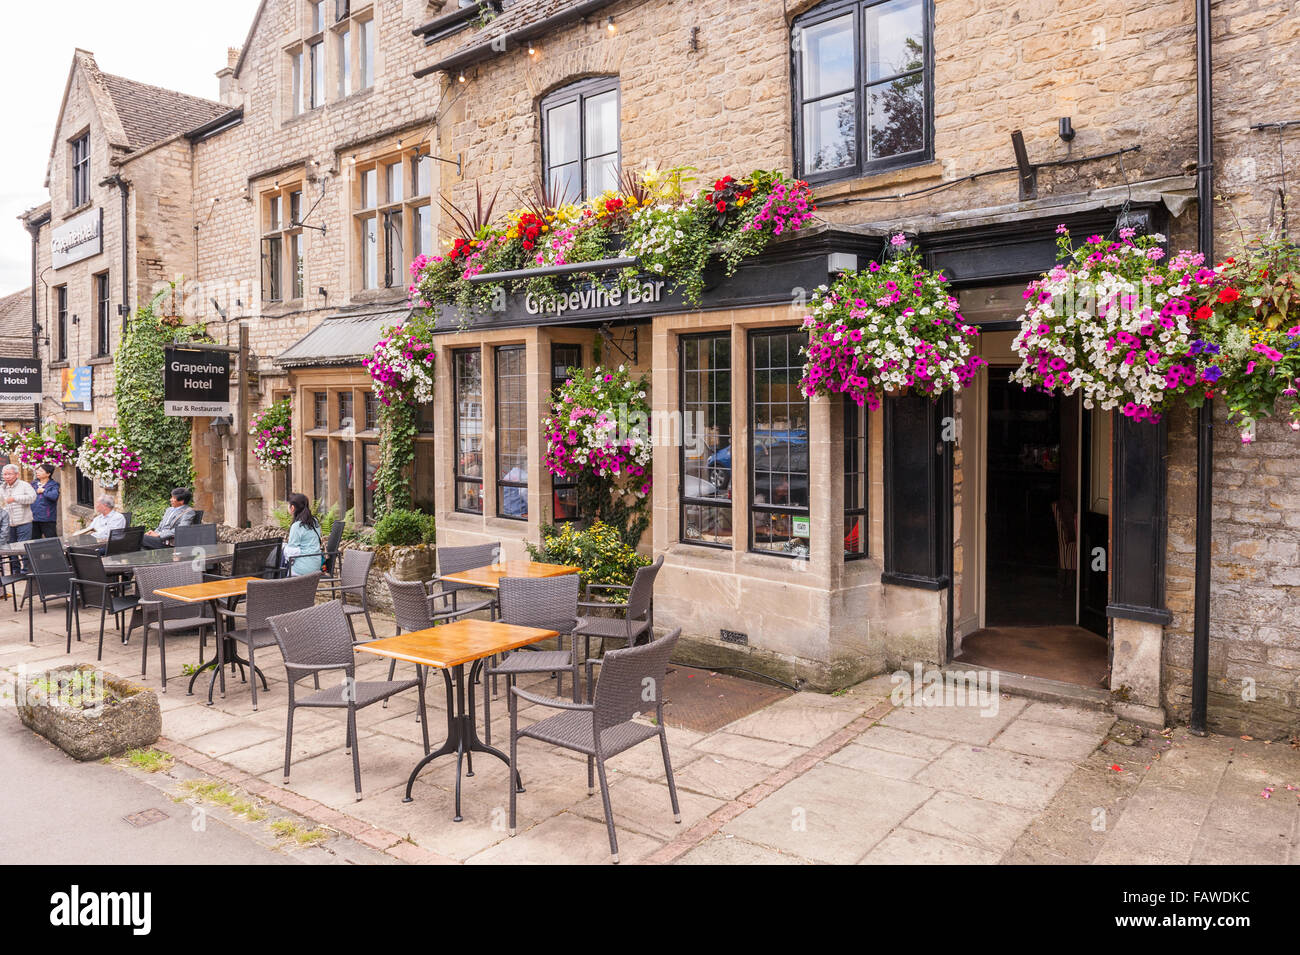 The Grapevine Bar at Stow-on-the-Wold , Cheltenham , Gloucestershire , England , Britain , Uk Stock Photo